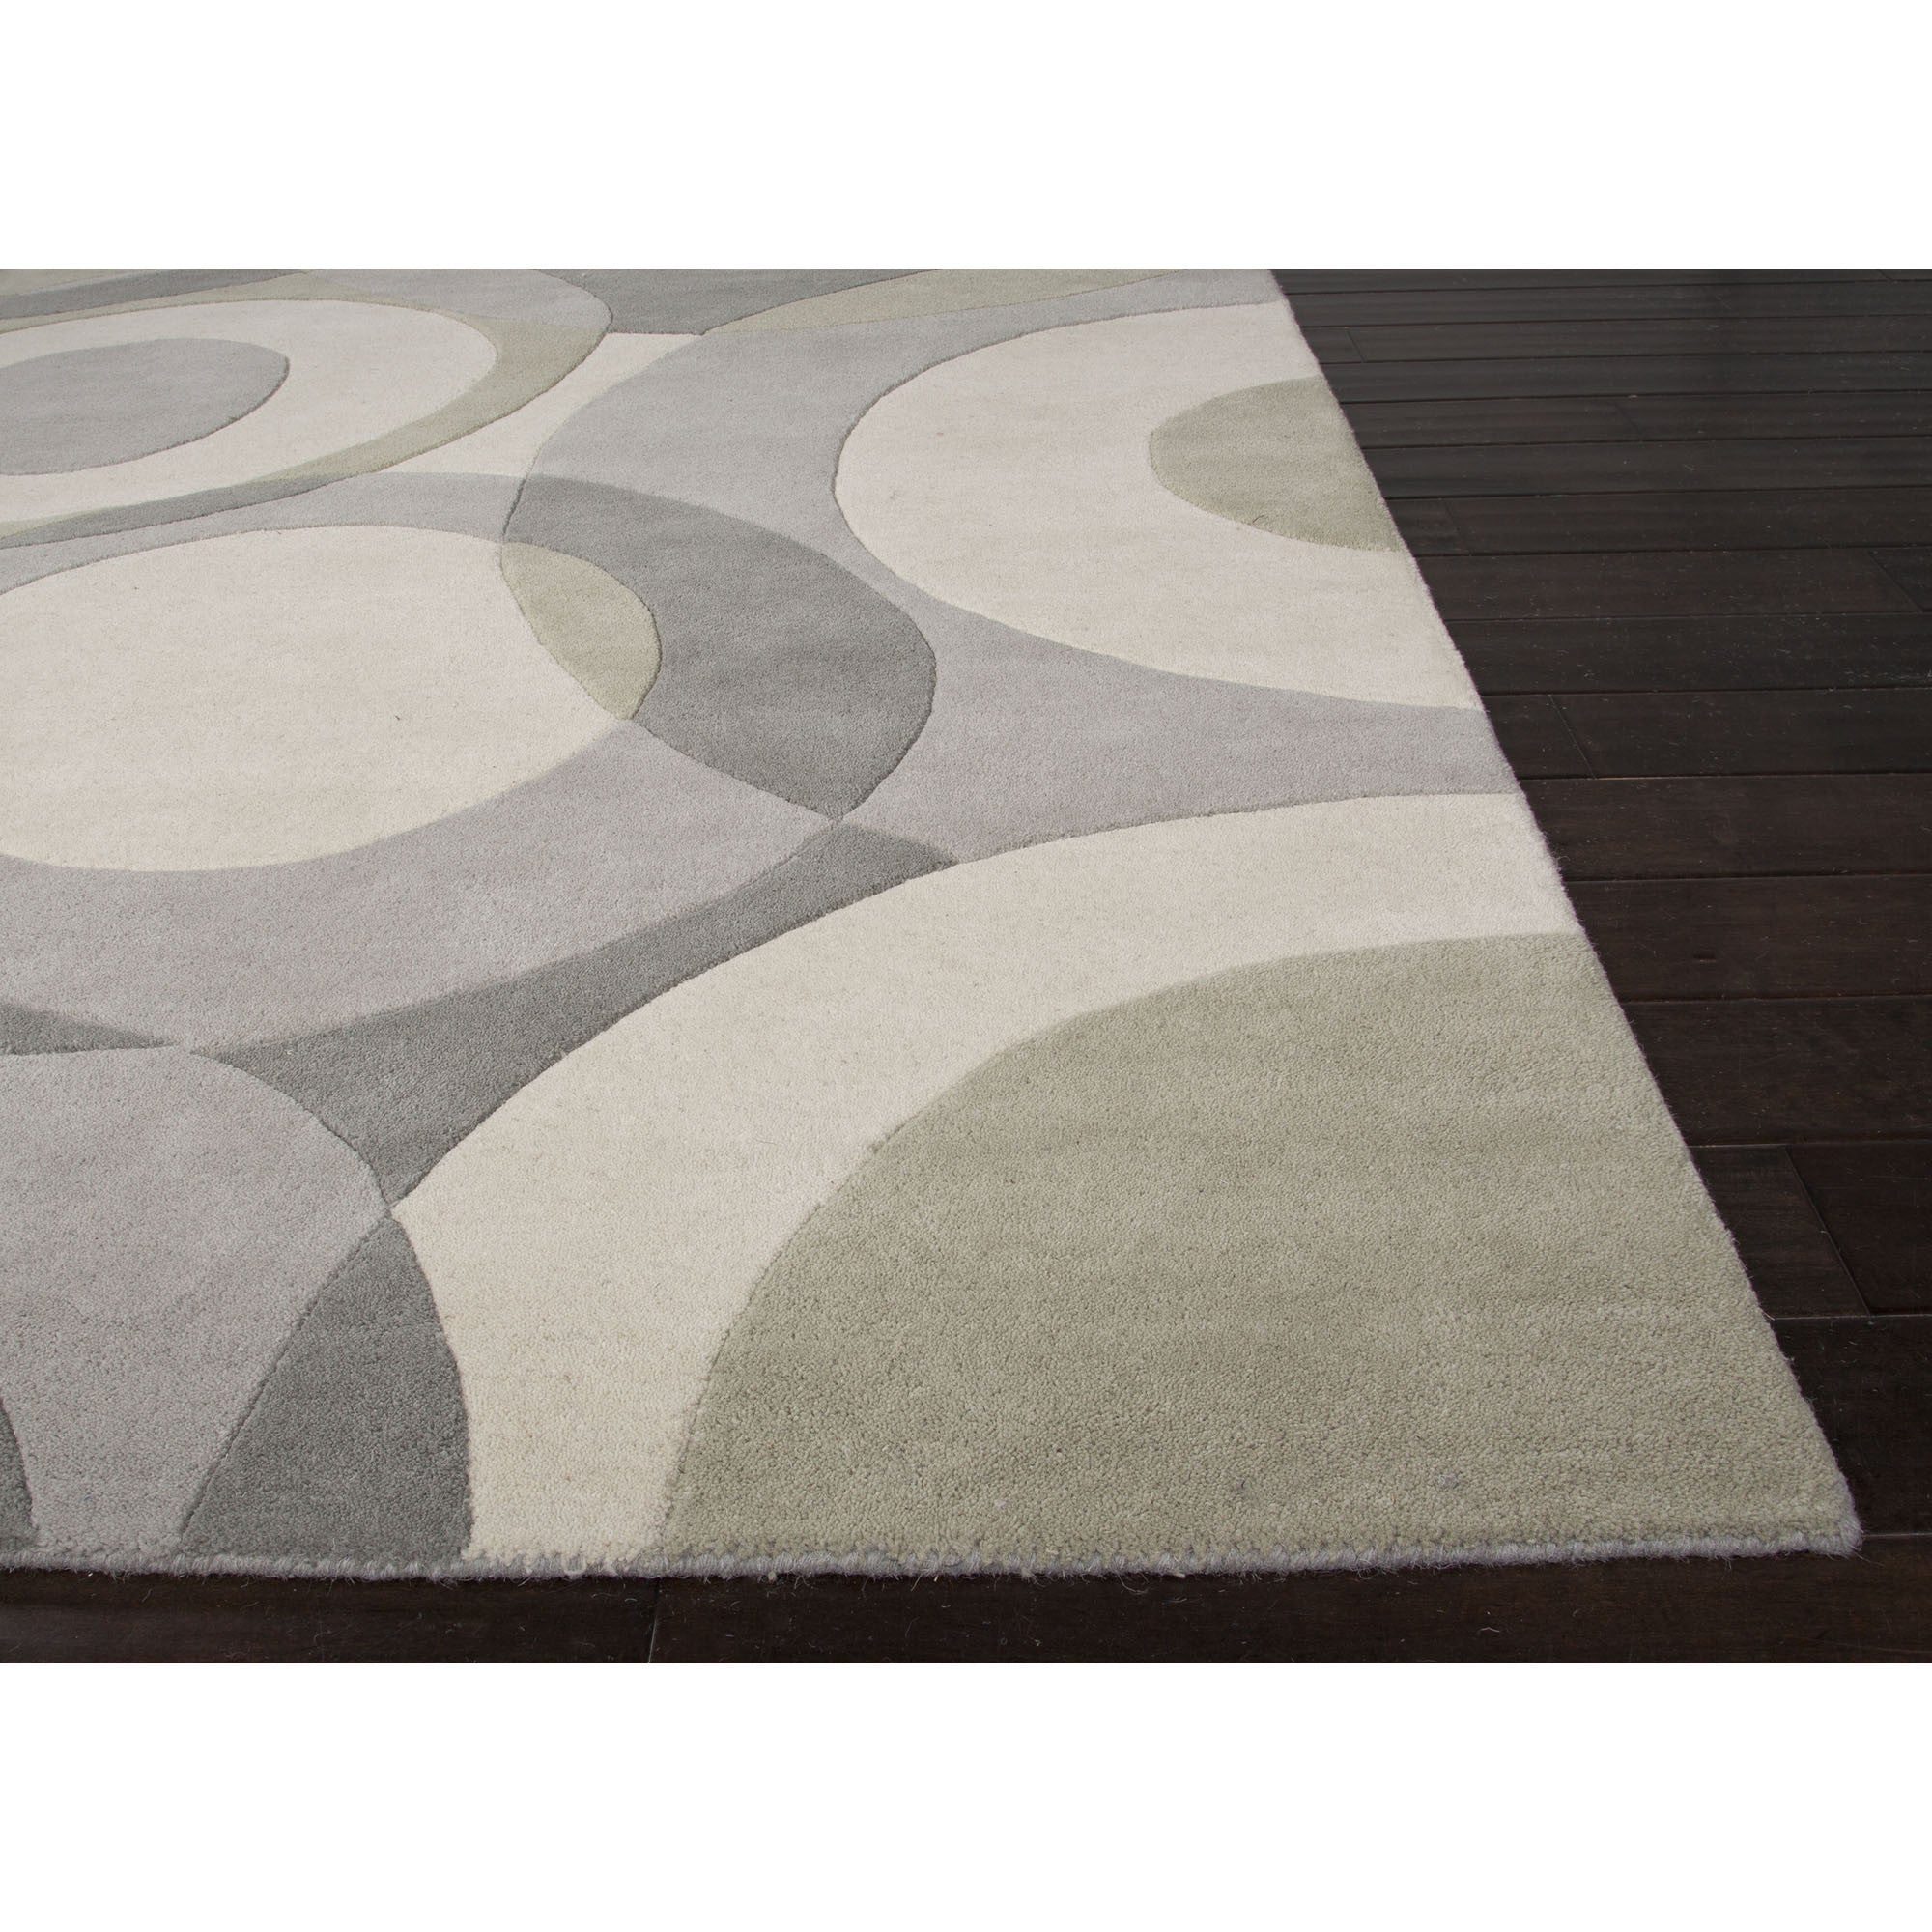 Jaipur rugs modern geometric pattern gray ivory wool area for Contemporary wool area rugs